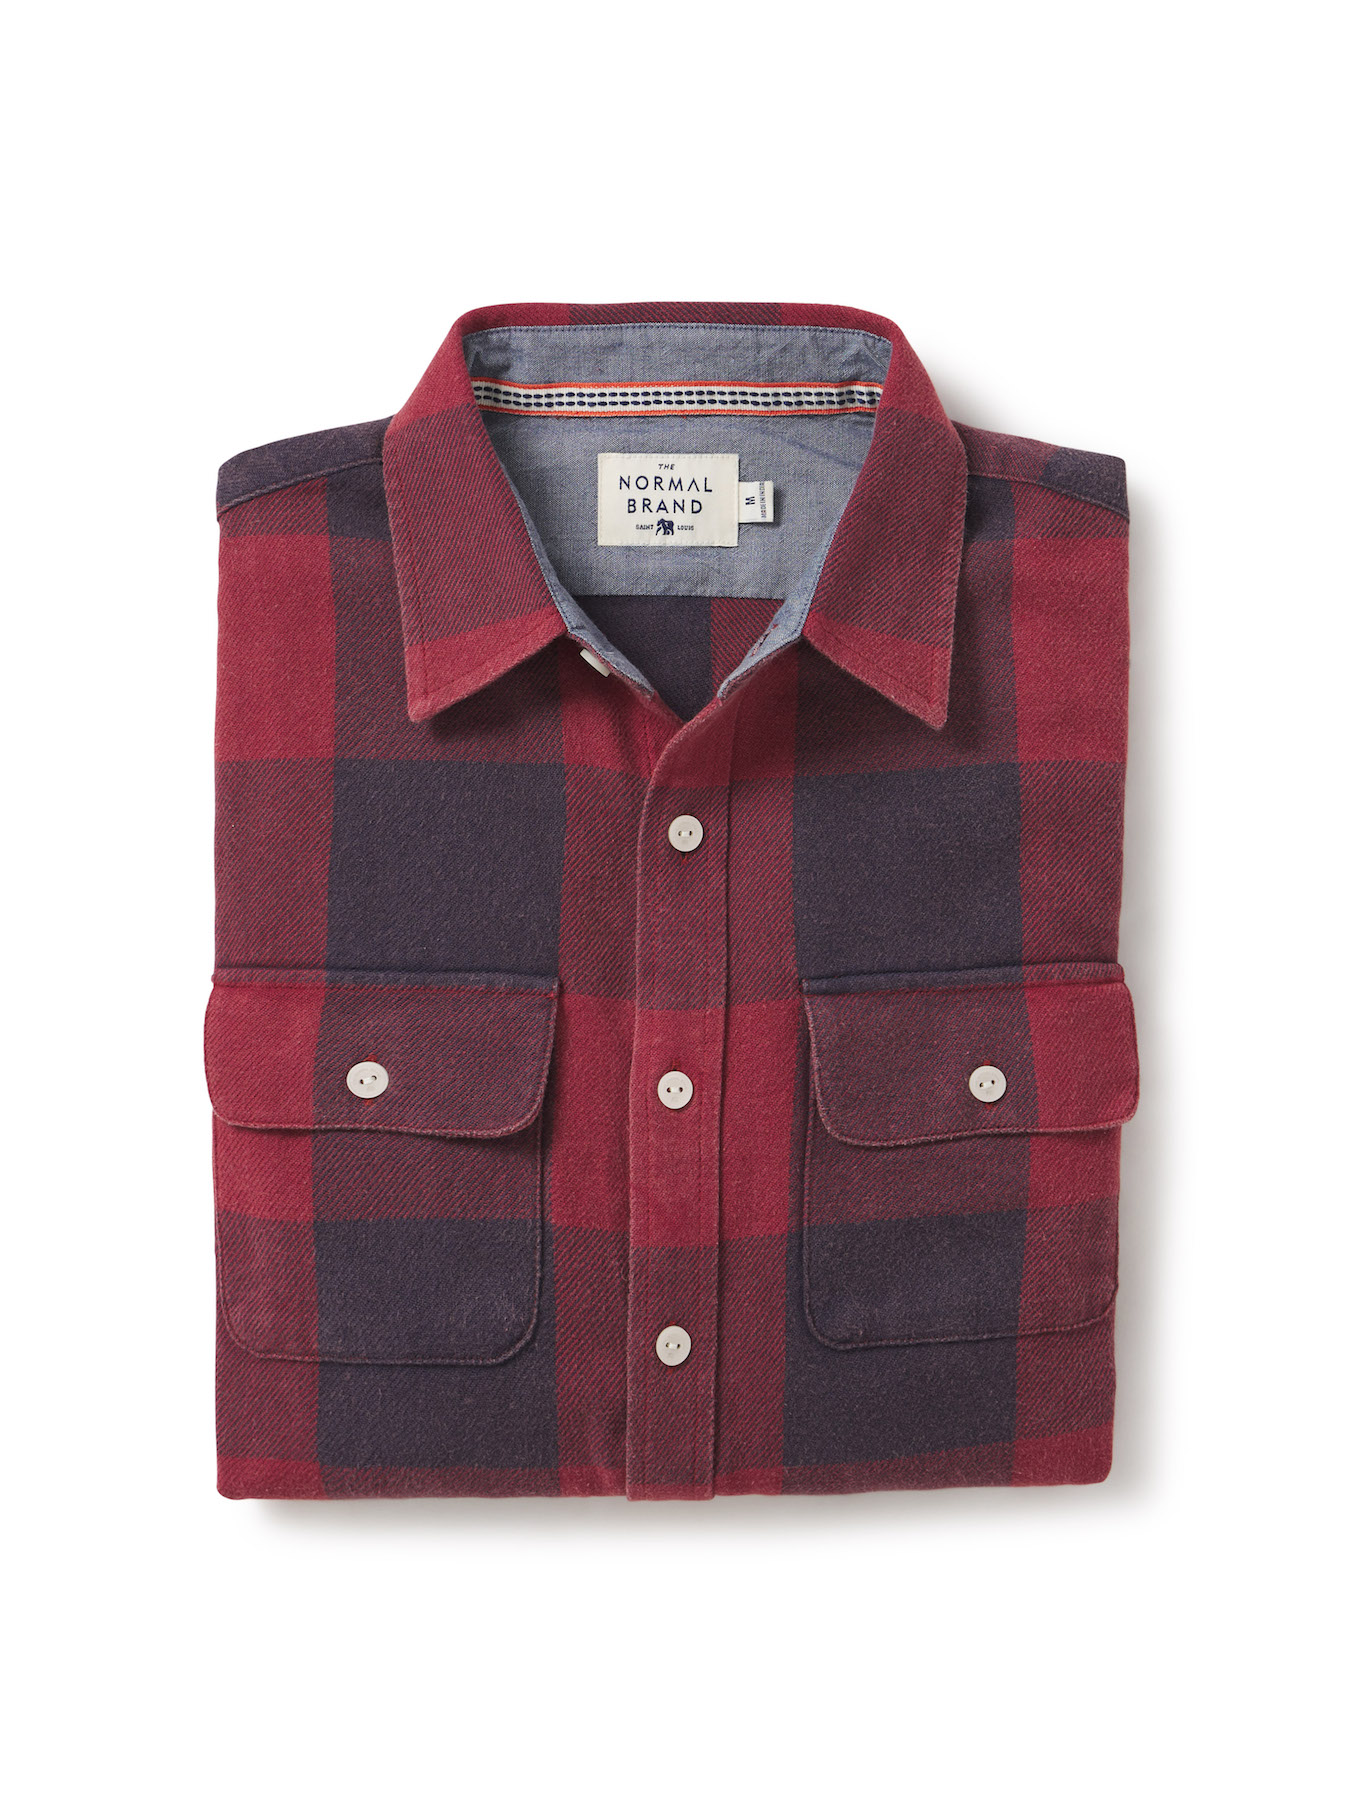 The-Normal-Brand-Table-Flat-Lay-Damion-Lloyd-Photography-Commercial-Product-Laydown-Apparel-Clothing-Los-Angeles-Orange-County-plaid-fold-shirt